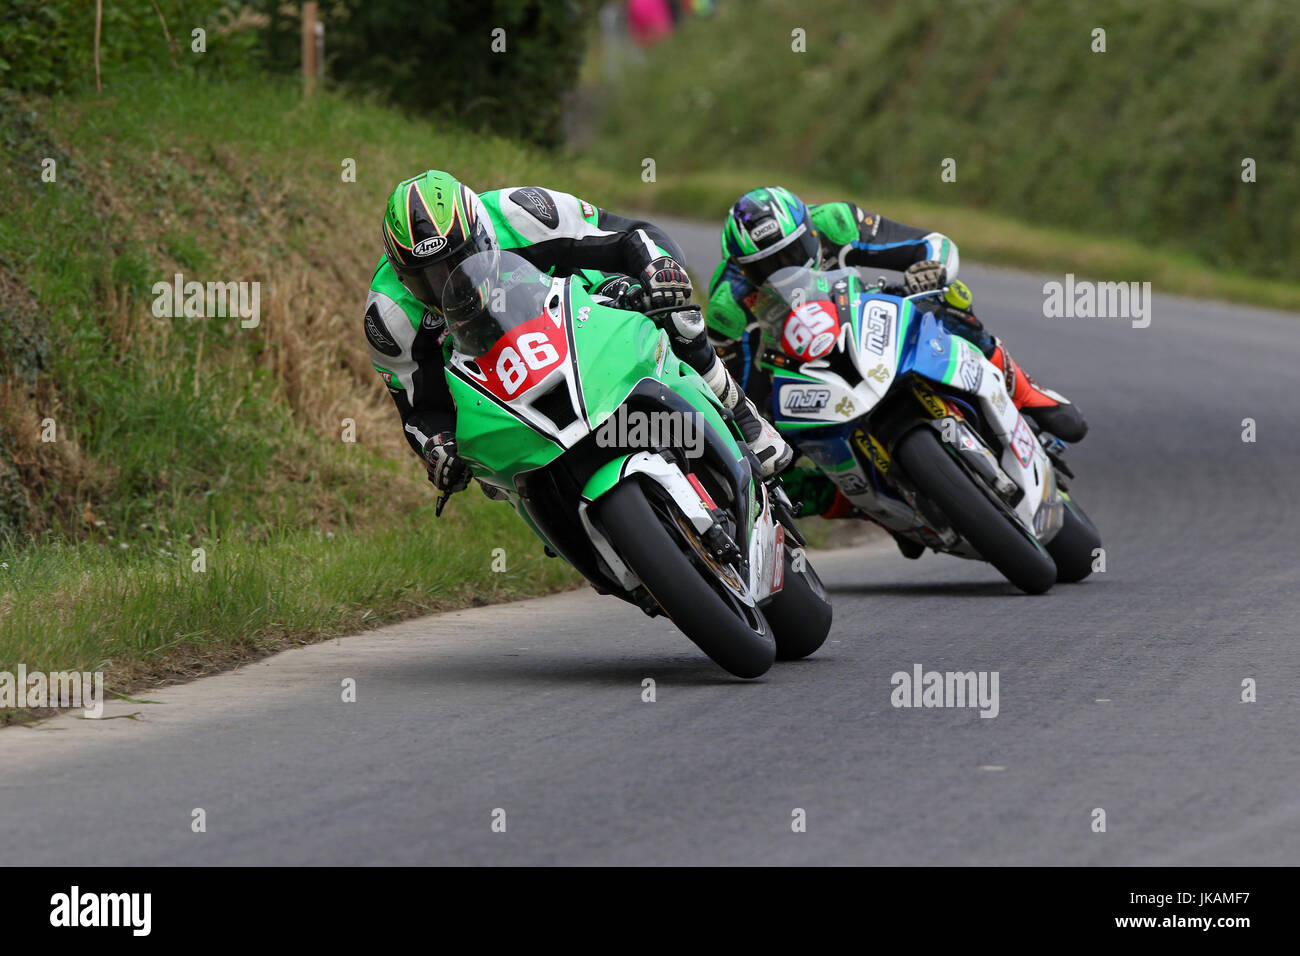 Derek McGee closely followed by Michael Sweeney at the Skerries 100 Road Races Ireland 2017. - Stock Image